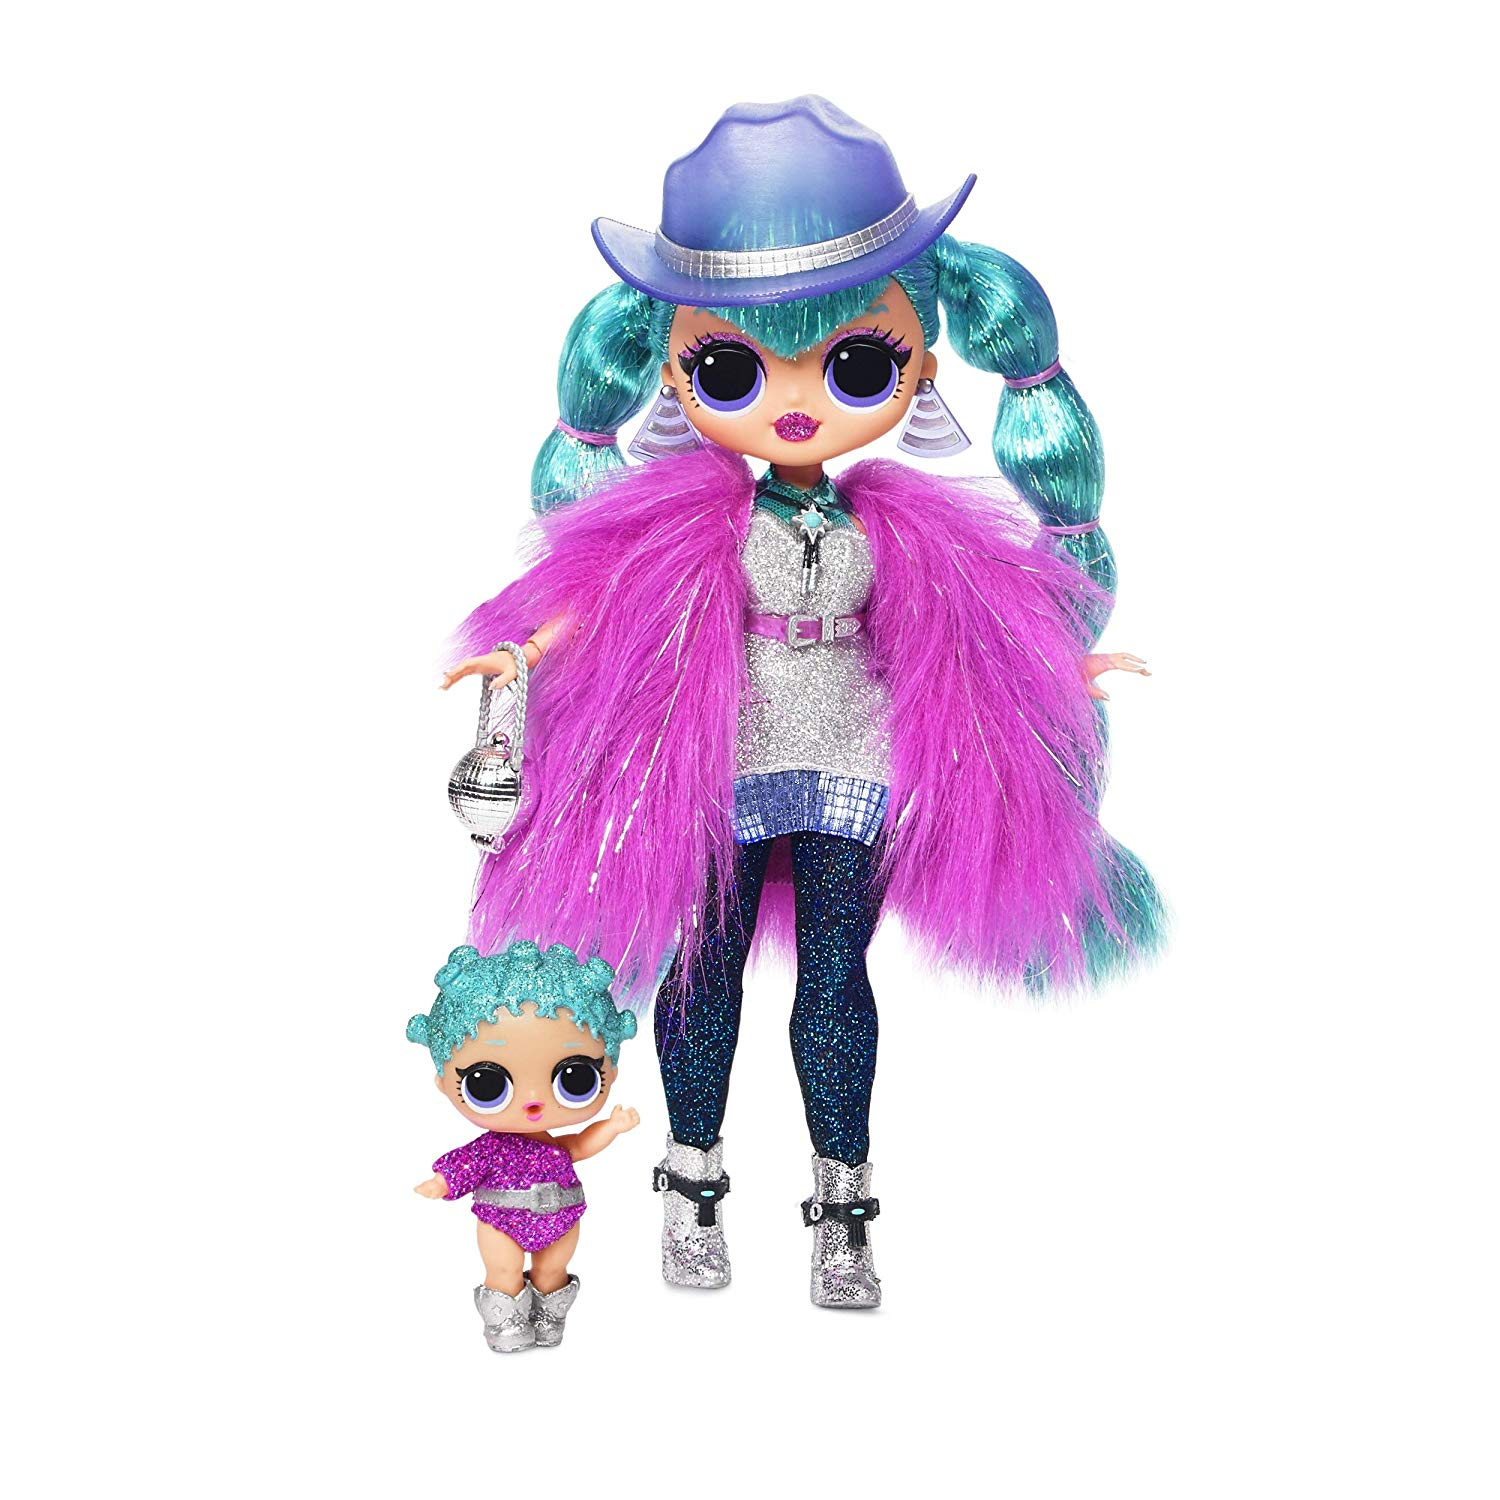 Winter Disco Dollie Fashion Doll /& Sister 1 New Sealed LOL Surprise O.M.G